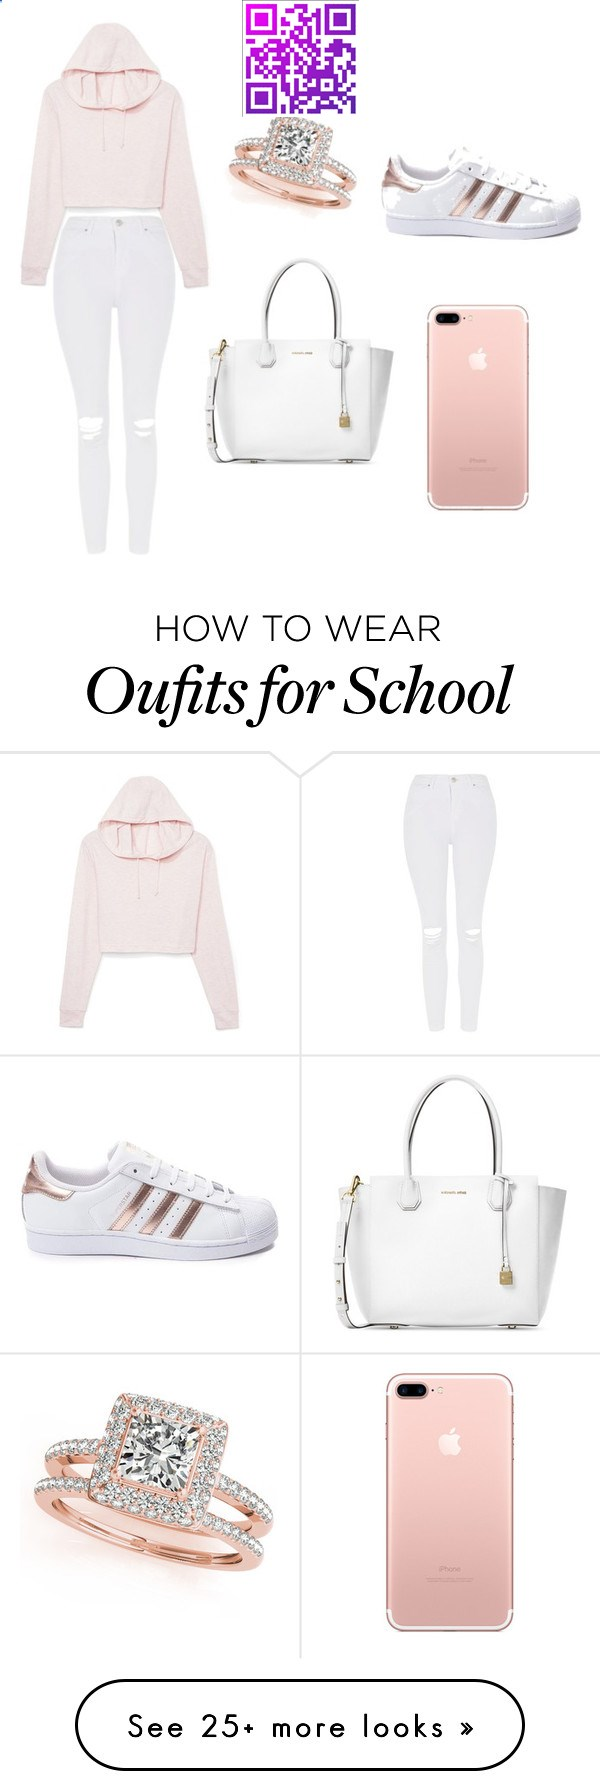 school outfit by ashlehhfhbffg on Polyvore featuring Michael Kors, Topshop, adidas and Allurez